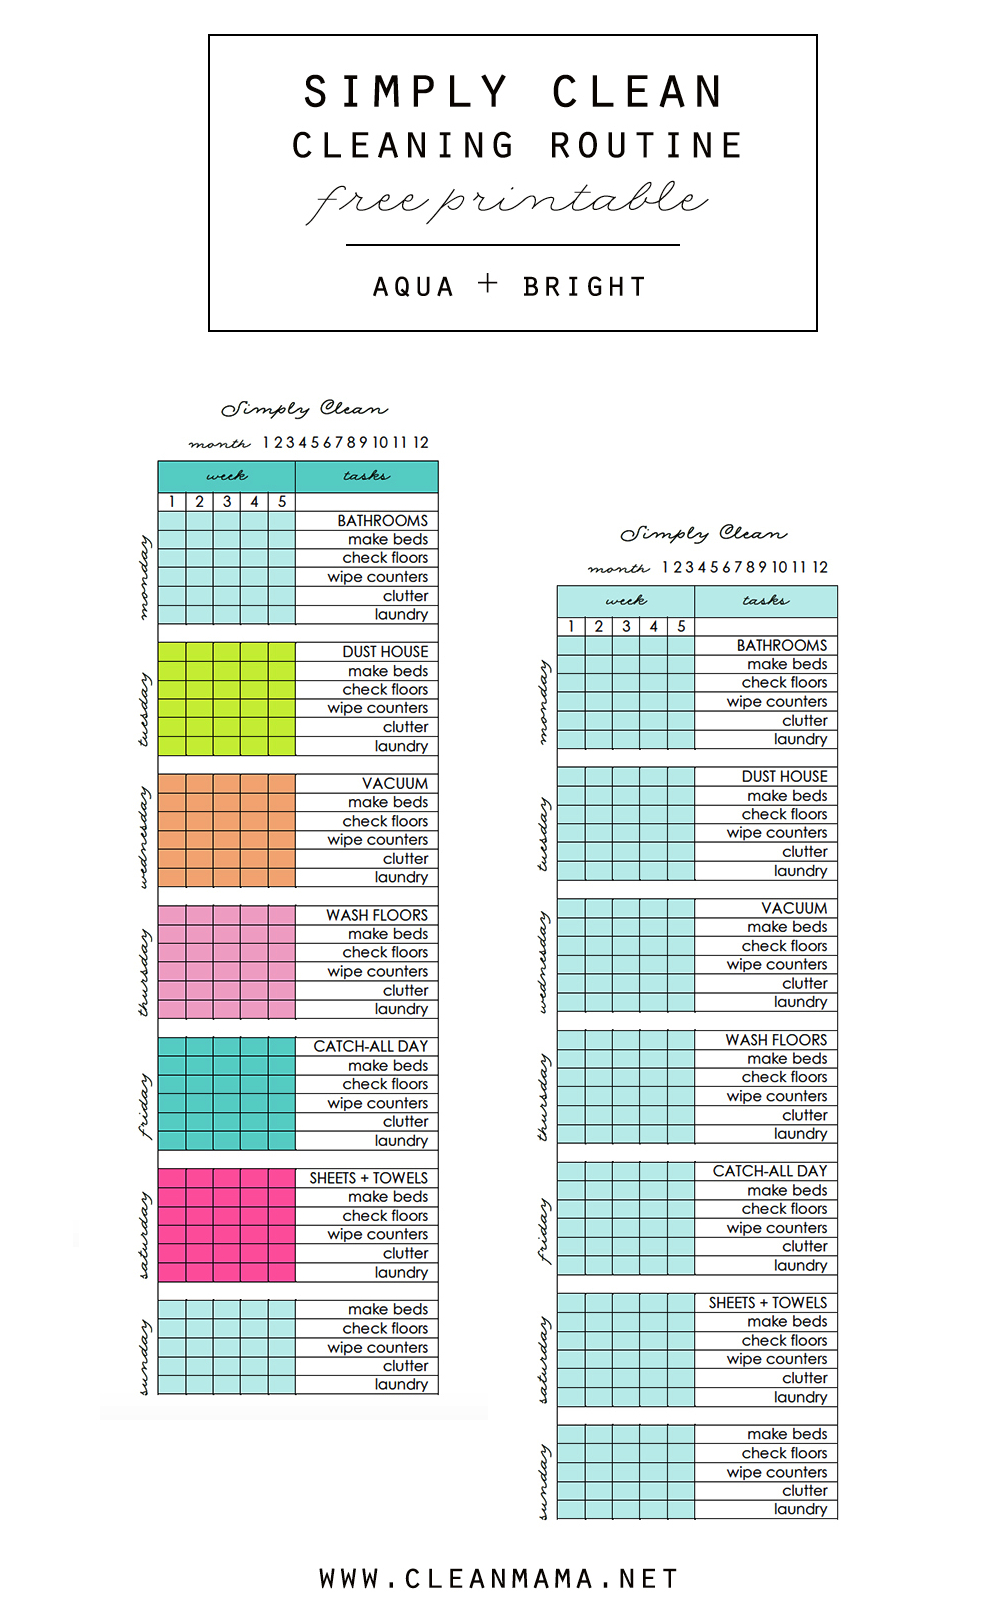 Simply Clean Cleaning Routine At A Glance Free Printable - Clean Mama - Free Printable Cleaning Schedule